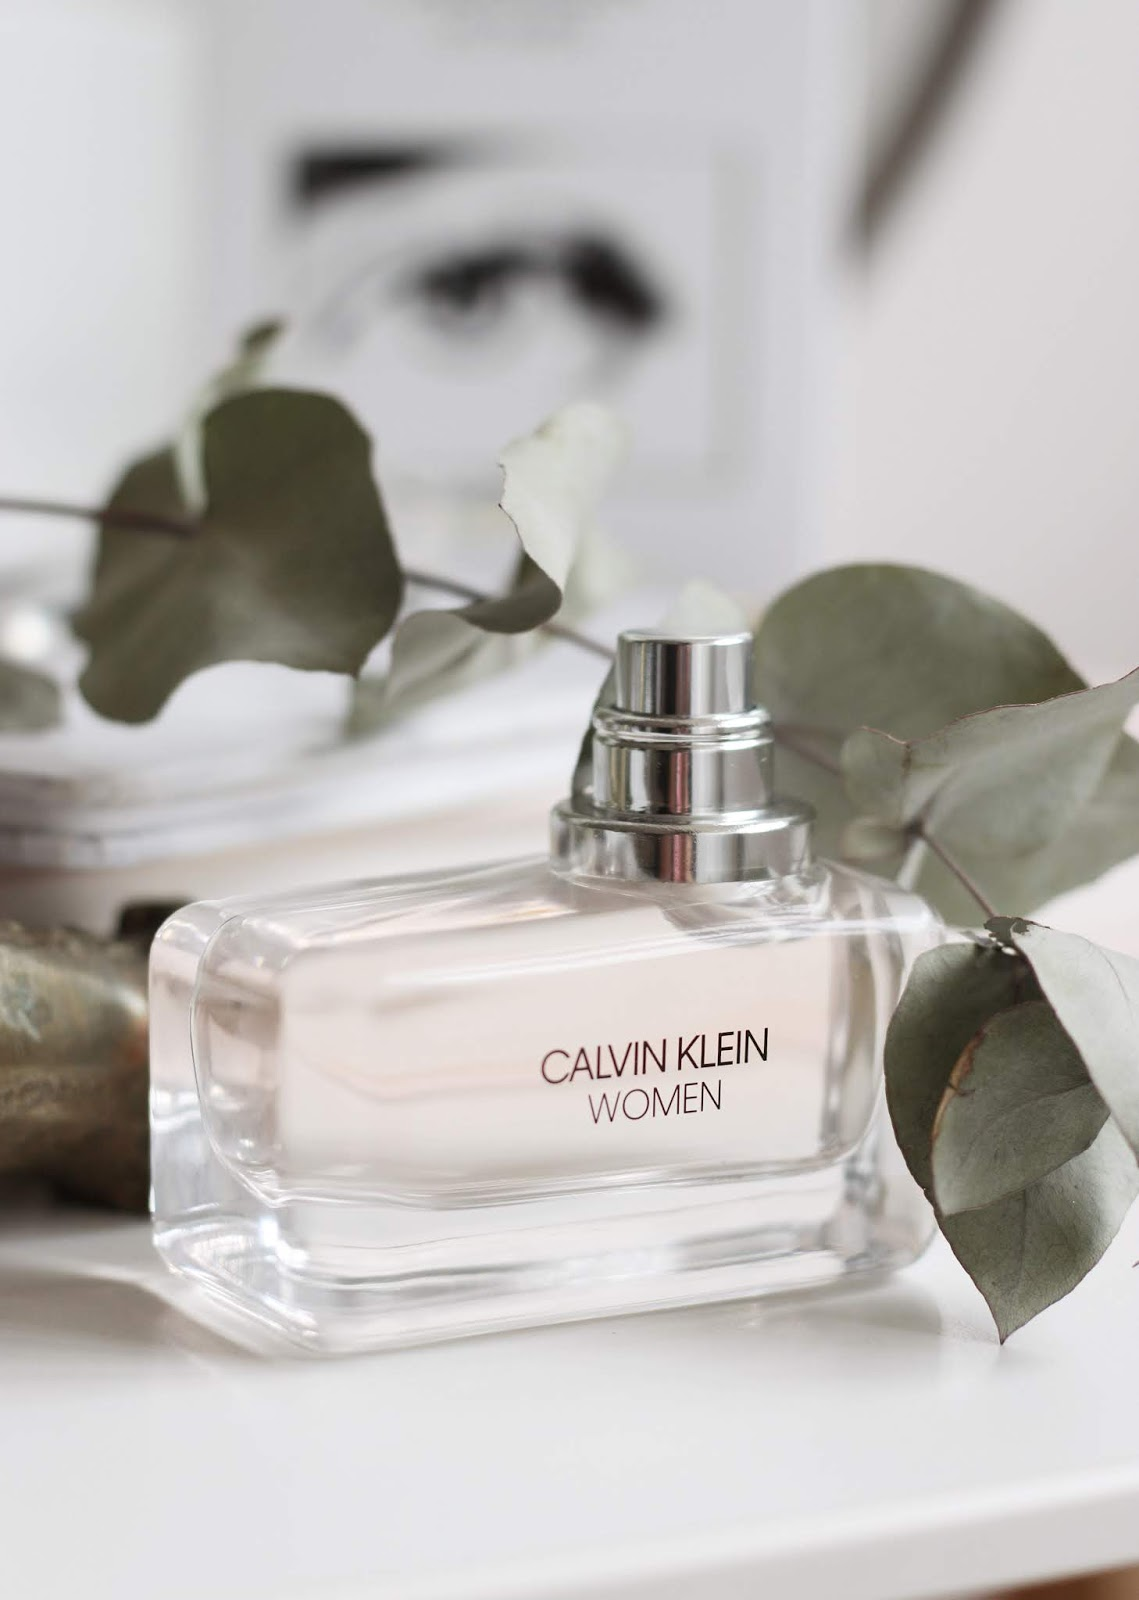 Calvin Klein Women Perfume Fragrance Direct Review